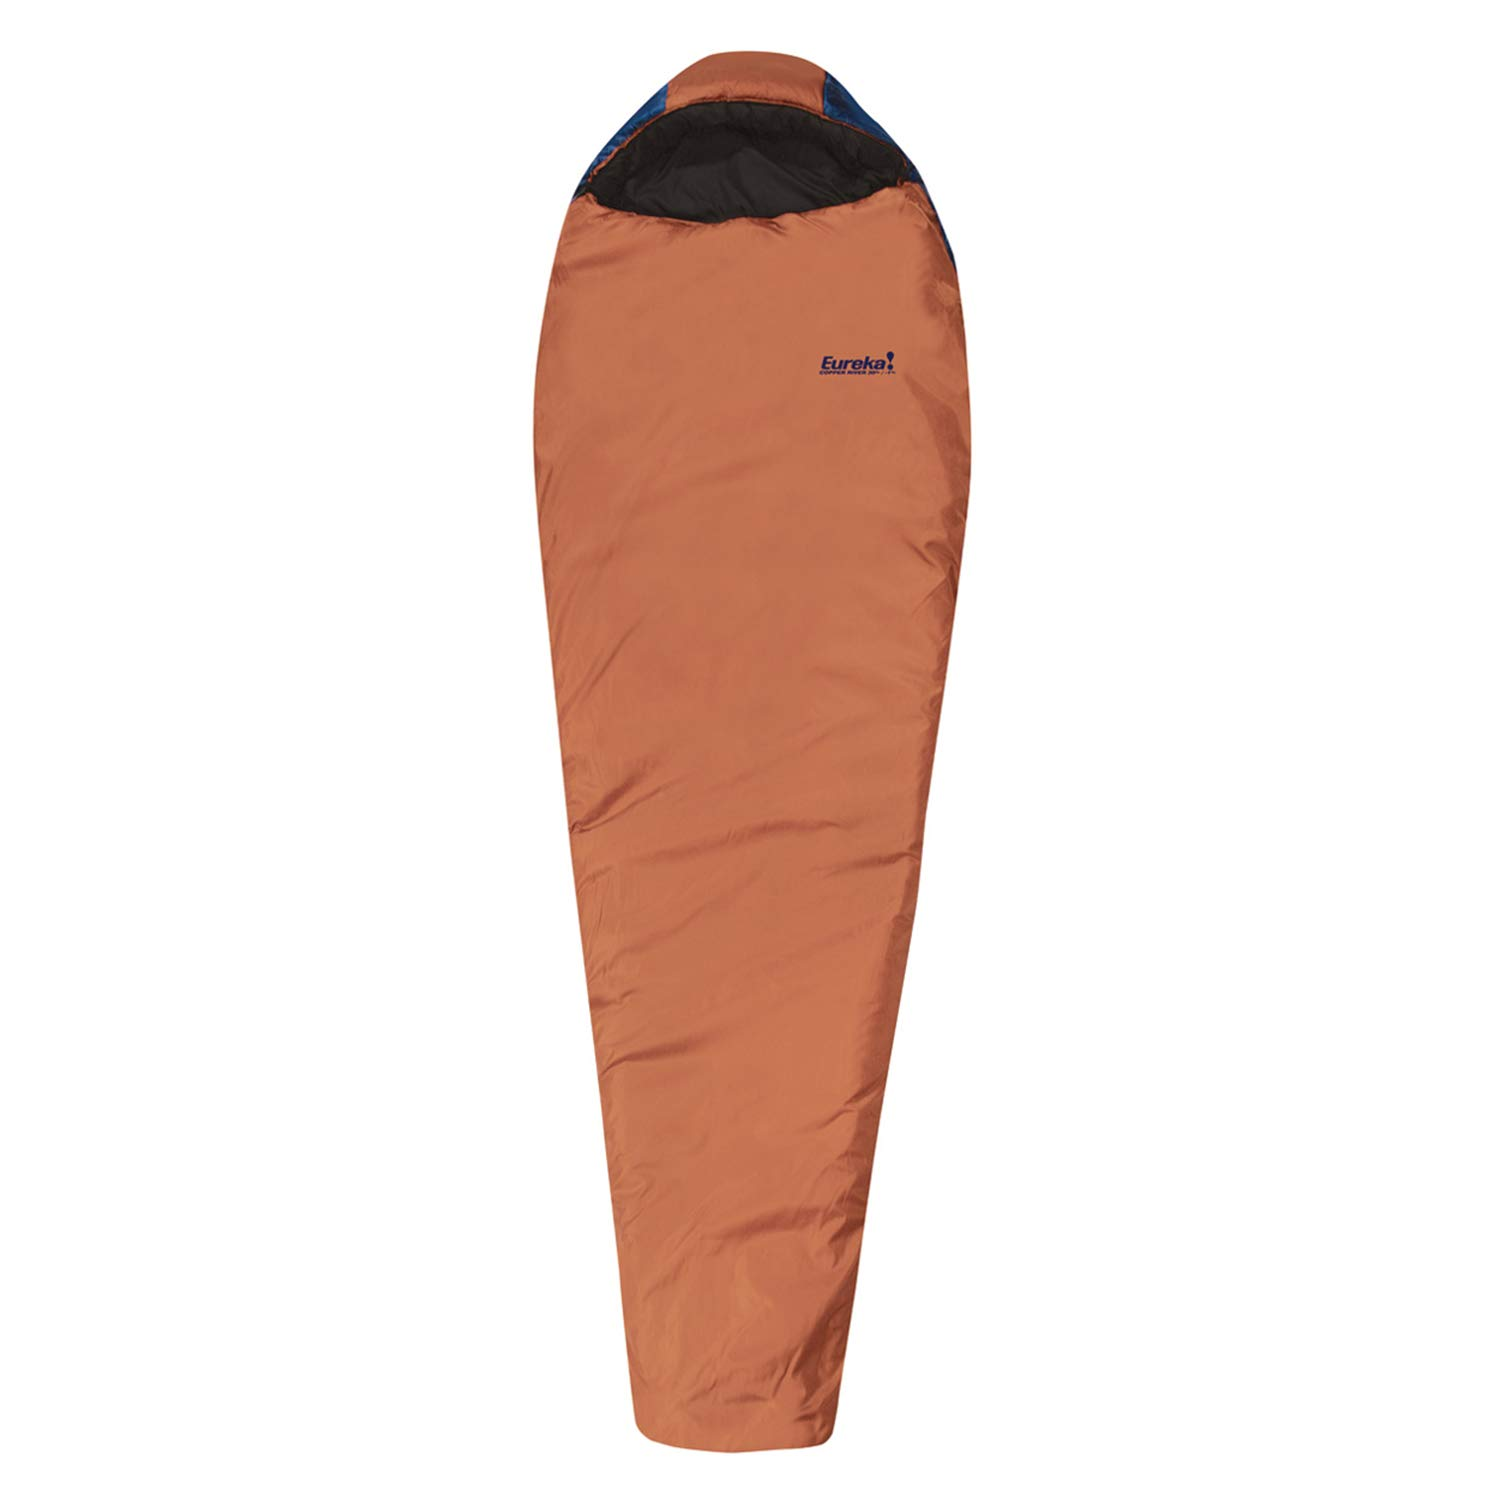 Eureka! Copper River 30-Degree, 3-Season Mummy Sleeping Bag, Regular Size, Brown/Blue (3 Pounds 7 Ounces)